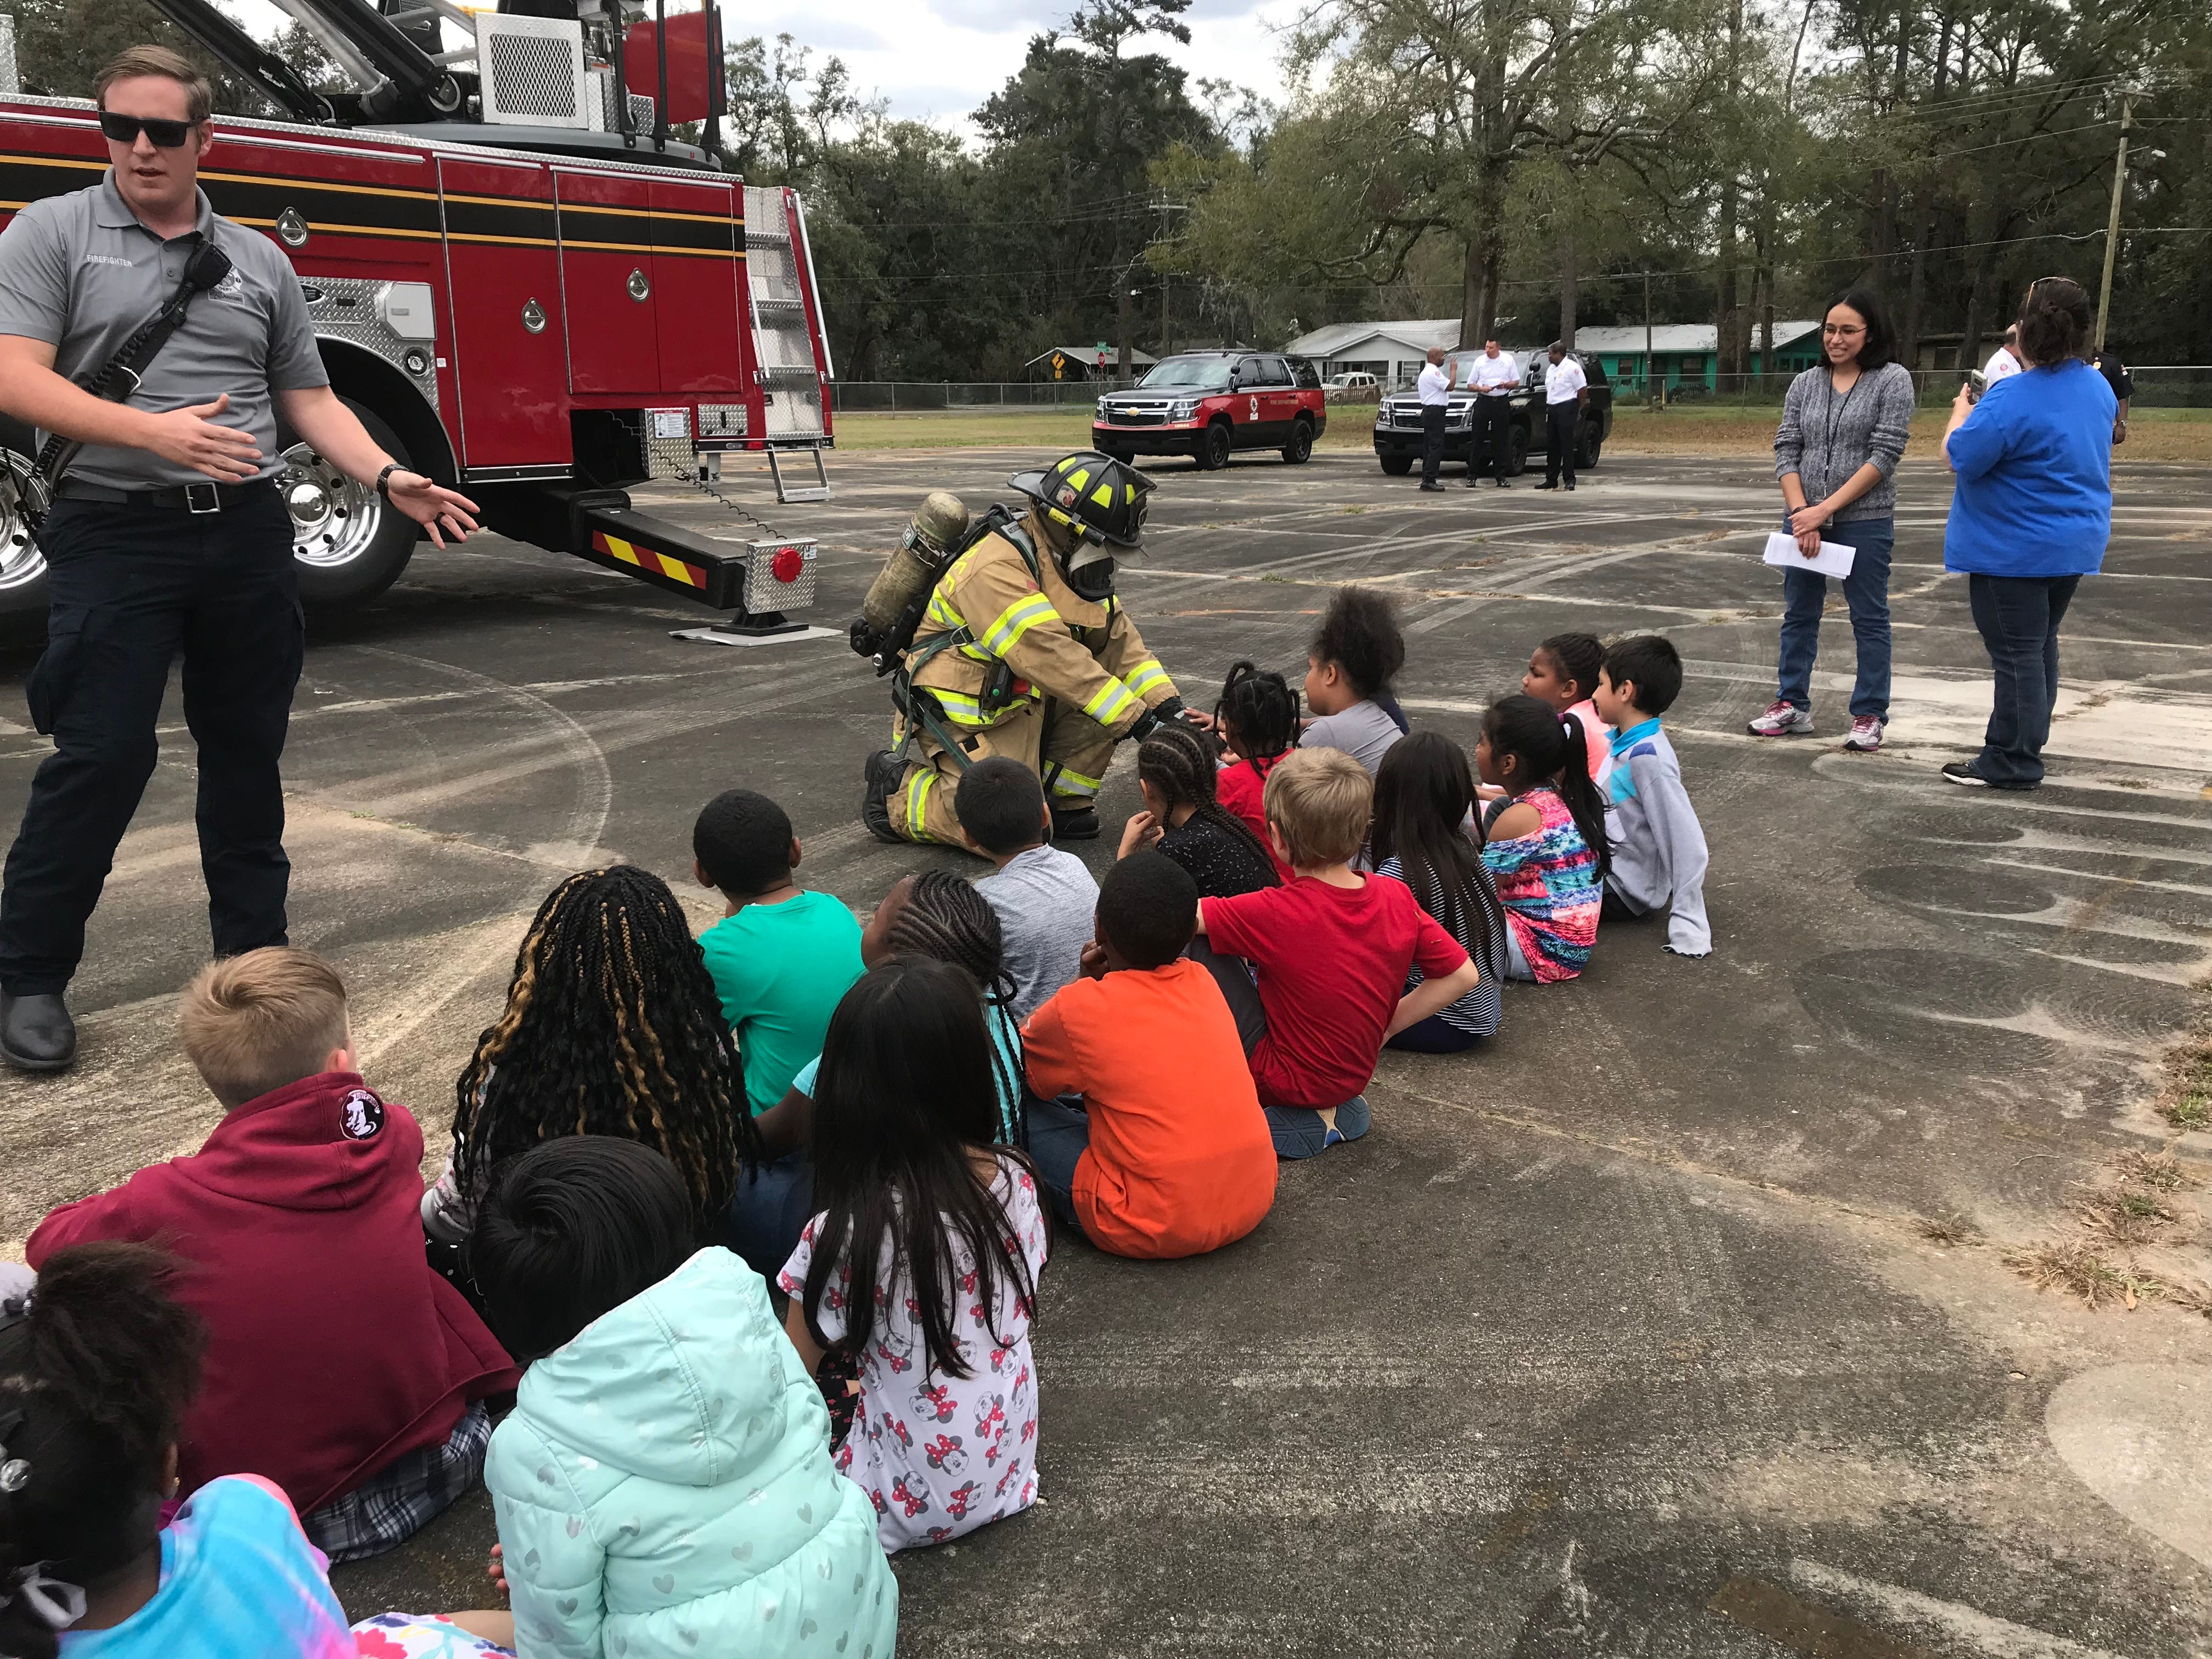 Firefighter Tom Burns, left, tells Sabal Palm Elementary second graders not to be afraid of first responders who may come to their house in an emergency while Engineer Jeff Brady lets students feel his gloves while visiting the school Friday.